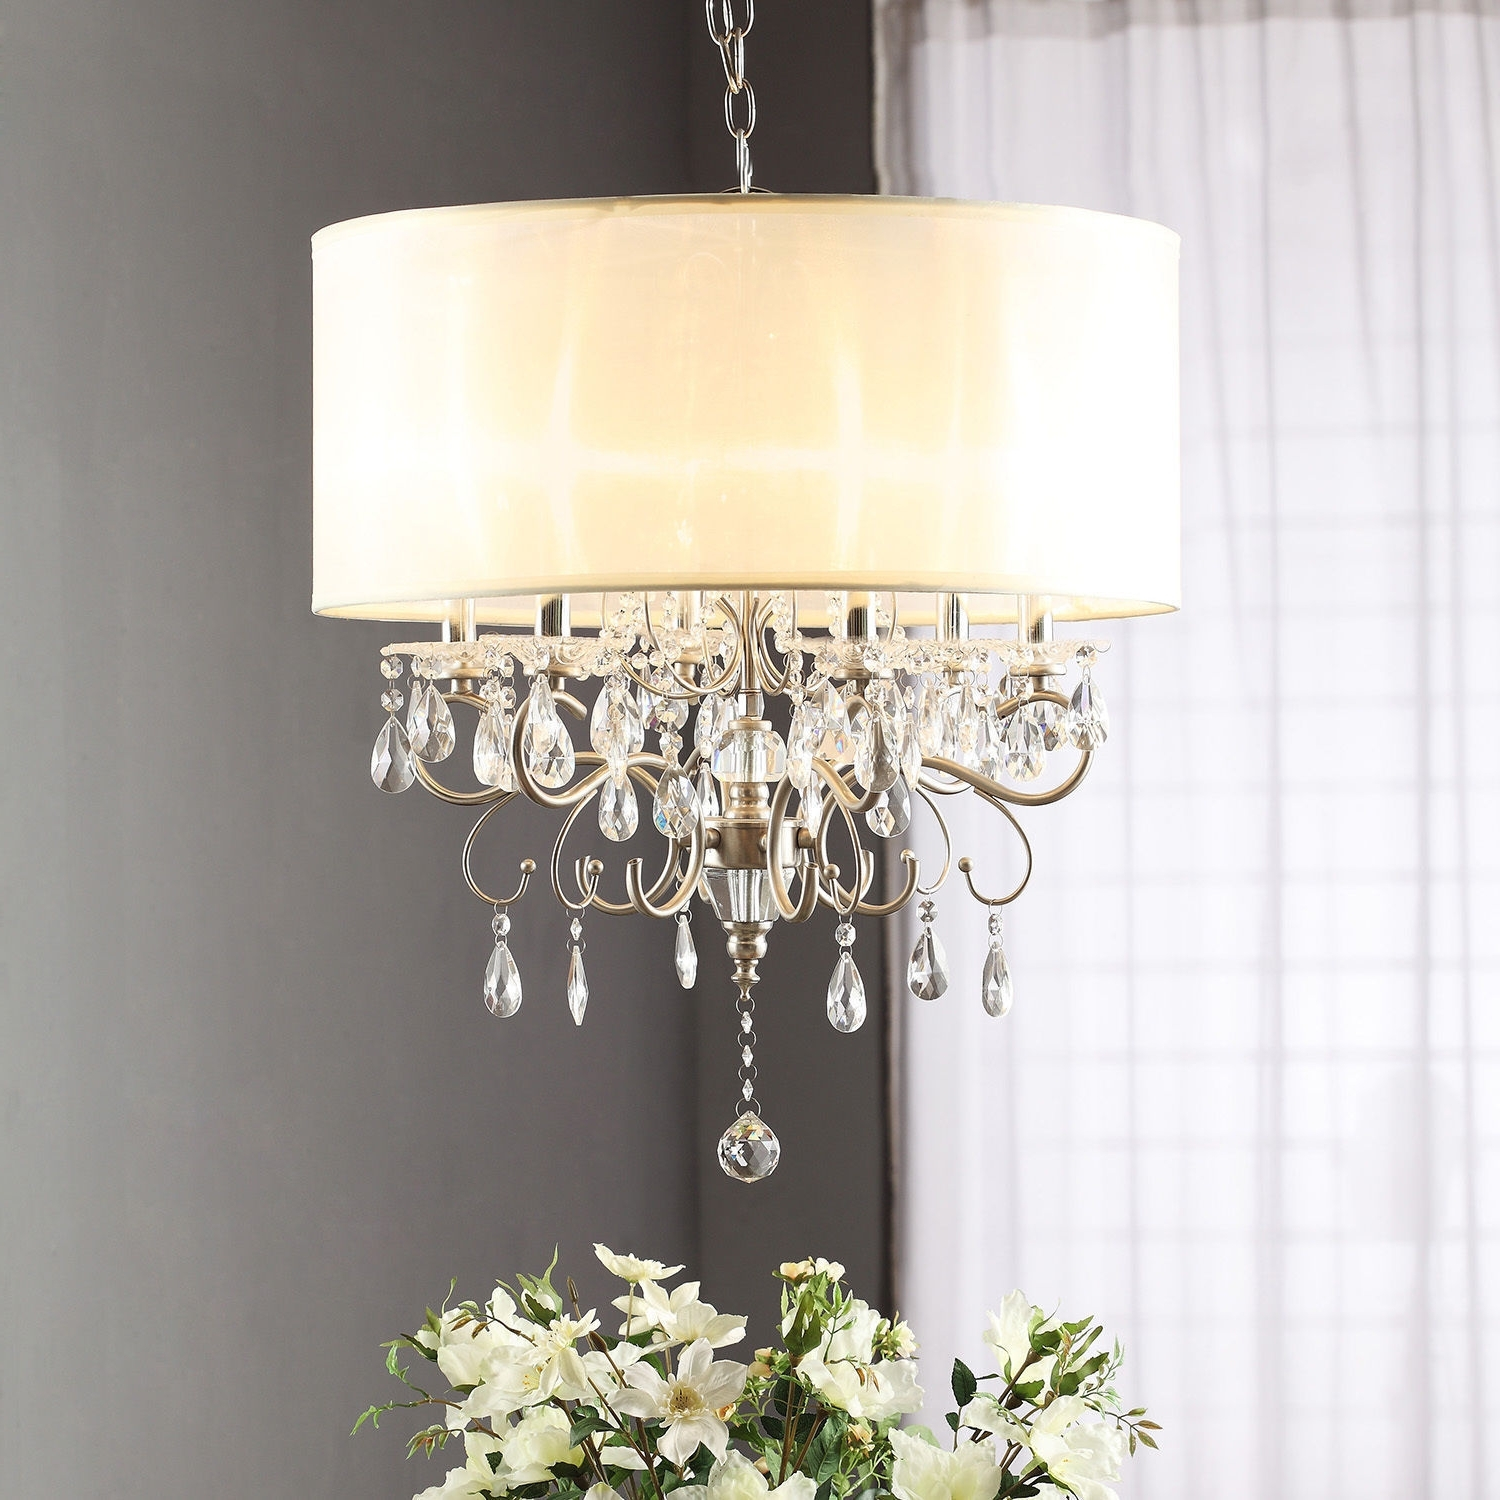 Widely Used Cream Chandelier Lights Within Drum Shade Chandelier With Crystals Brizzo Lighting Brass (View 20 of 20)